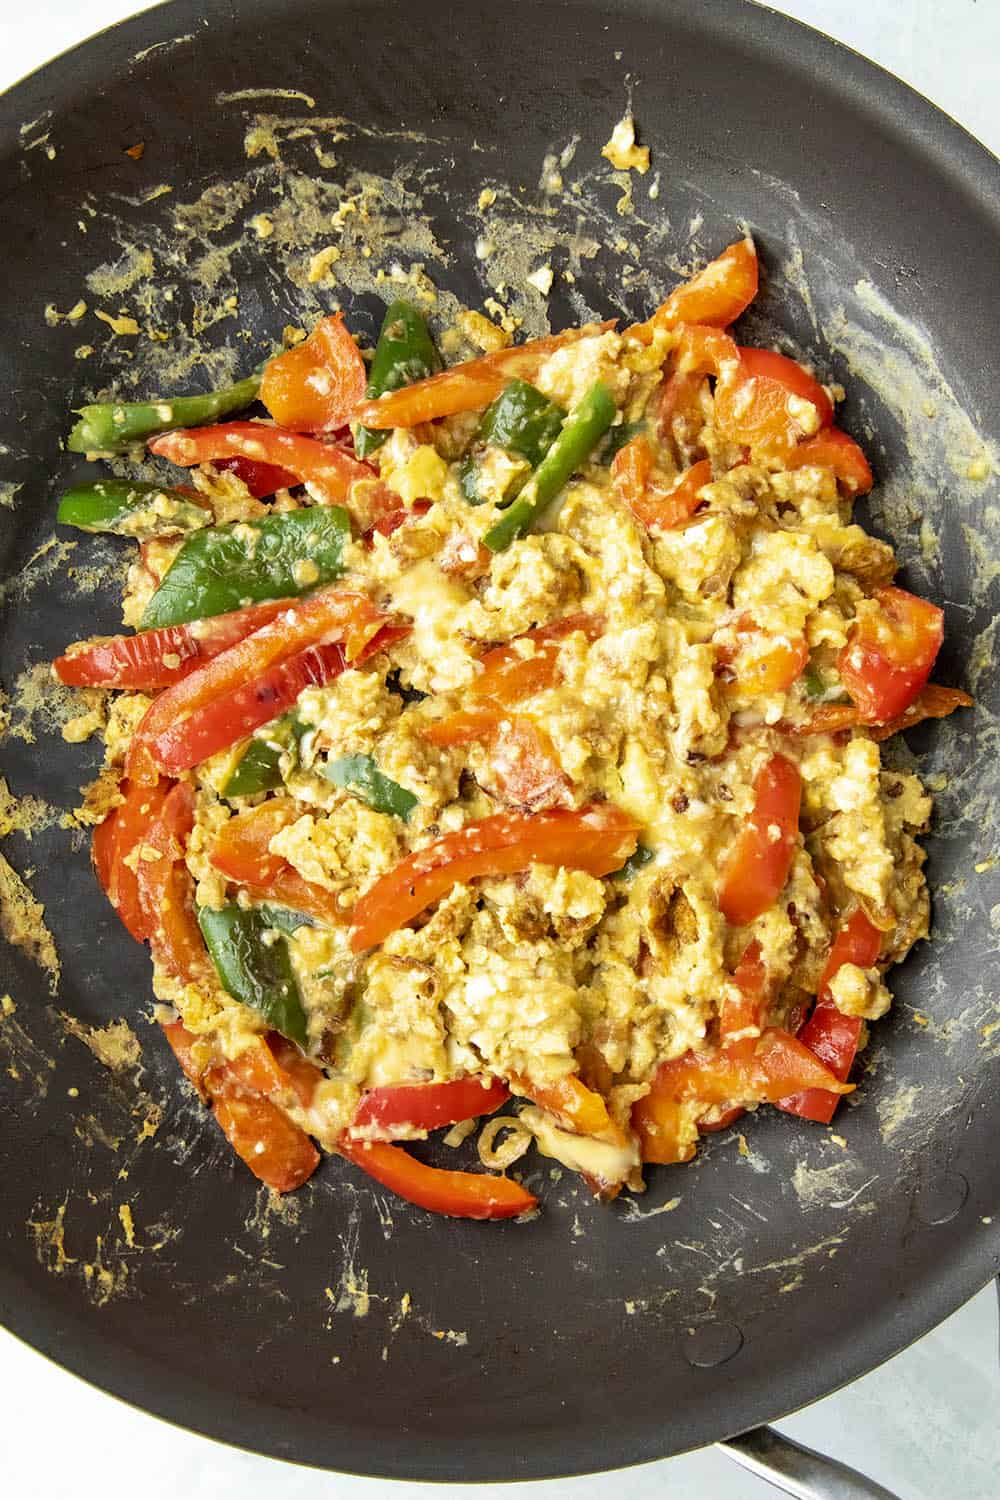 Scrambled eggs with peppers in a pan